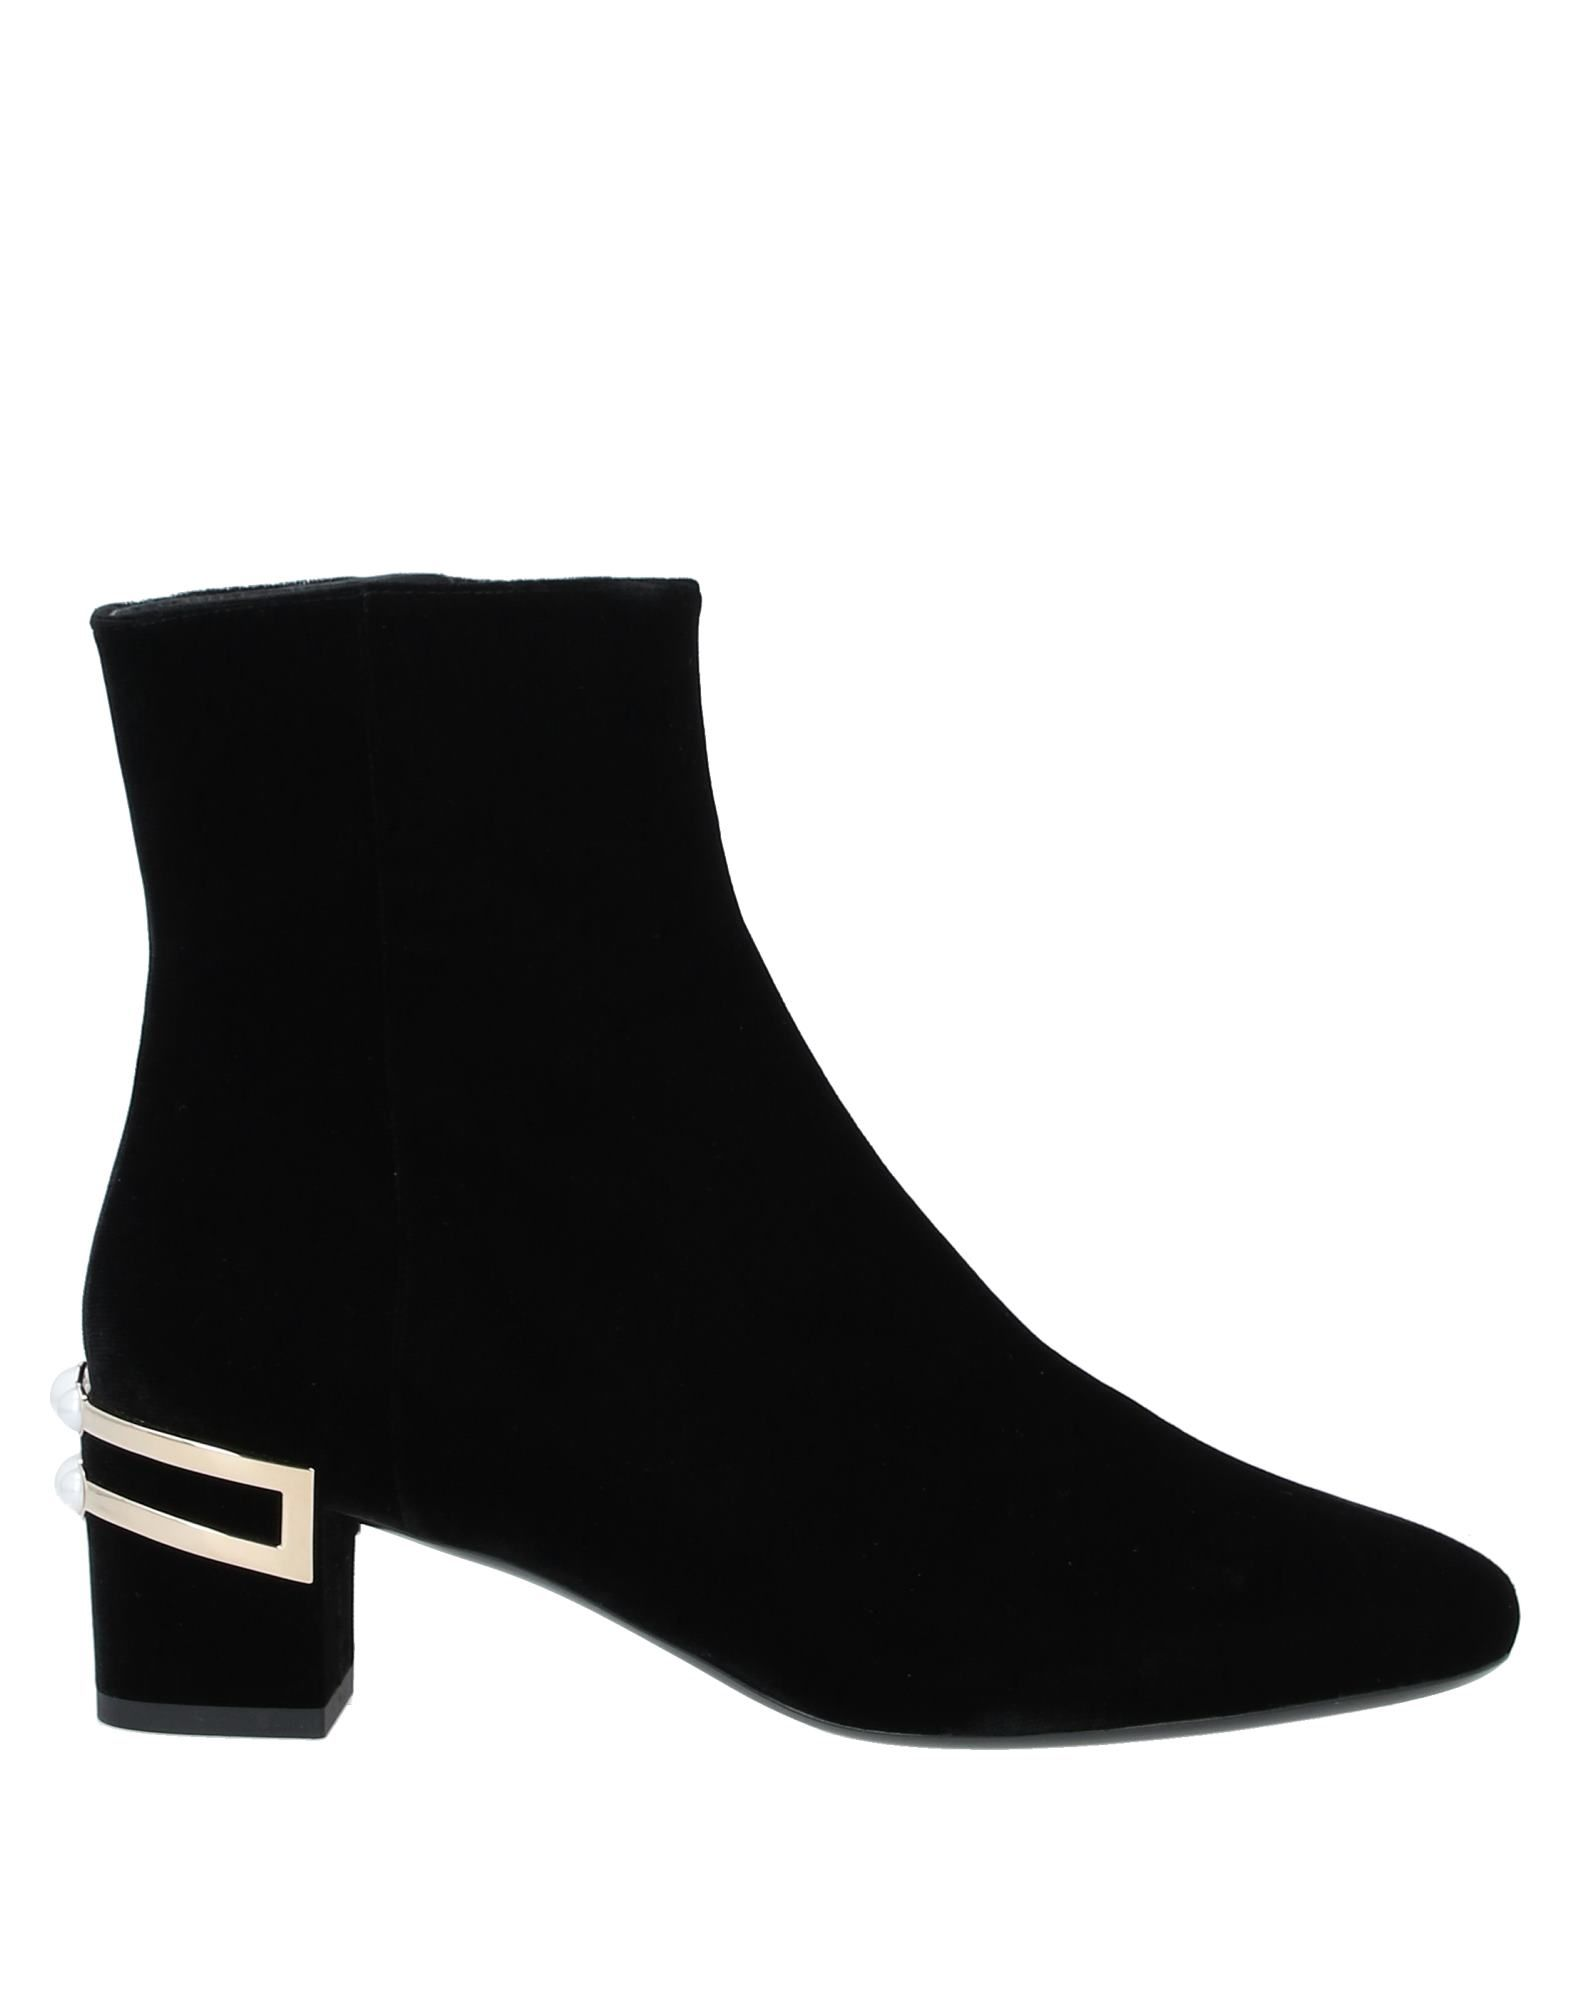 ROGER VIVIER Ankle boots. metal applications, contrasting applications, solid color, zipper closure, narrow toeline, square heel, covered heel, leather lining, leather sole, contains non-textile parts of animal origin. Textile fibers